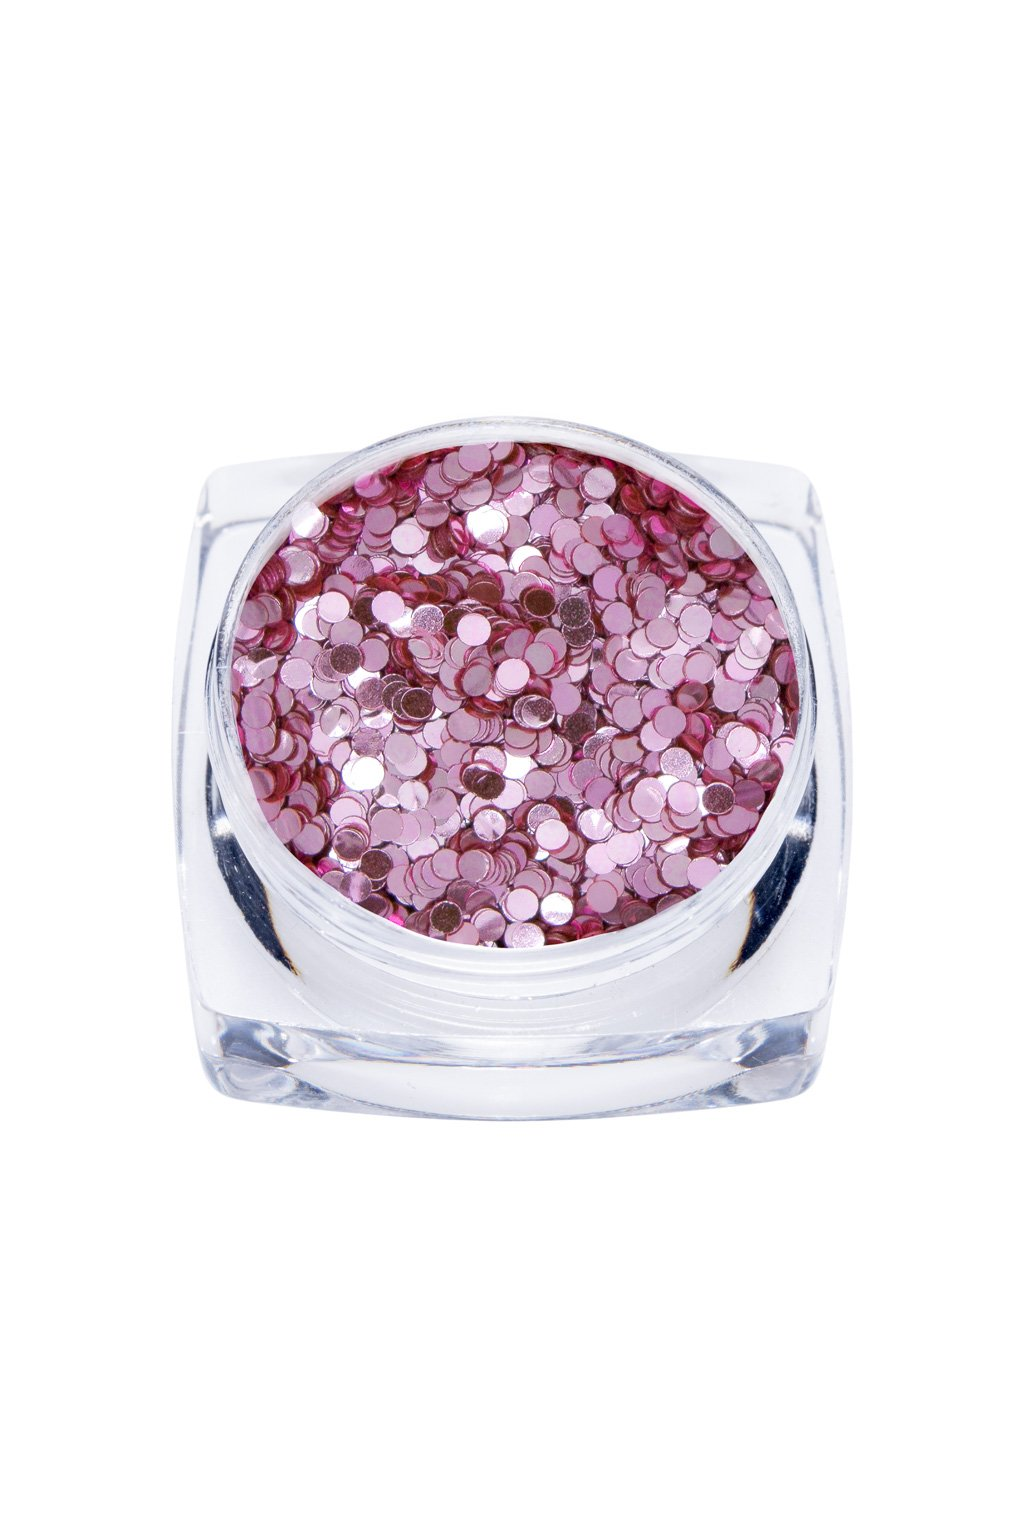 24029 minipihy chrome pink 1mm